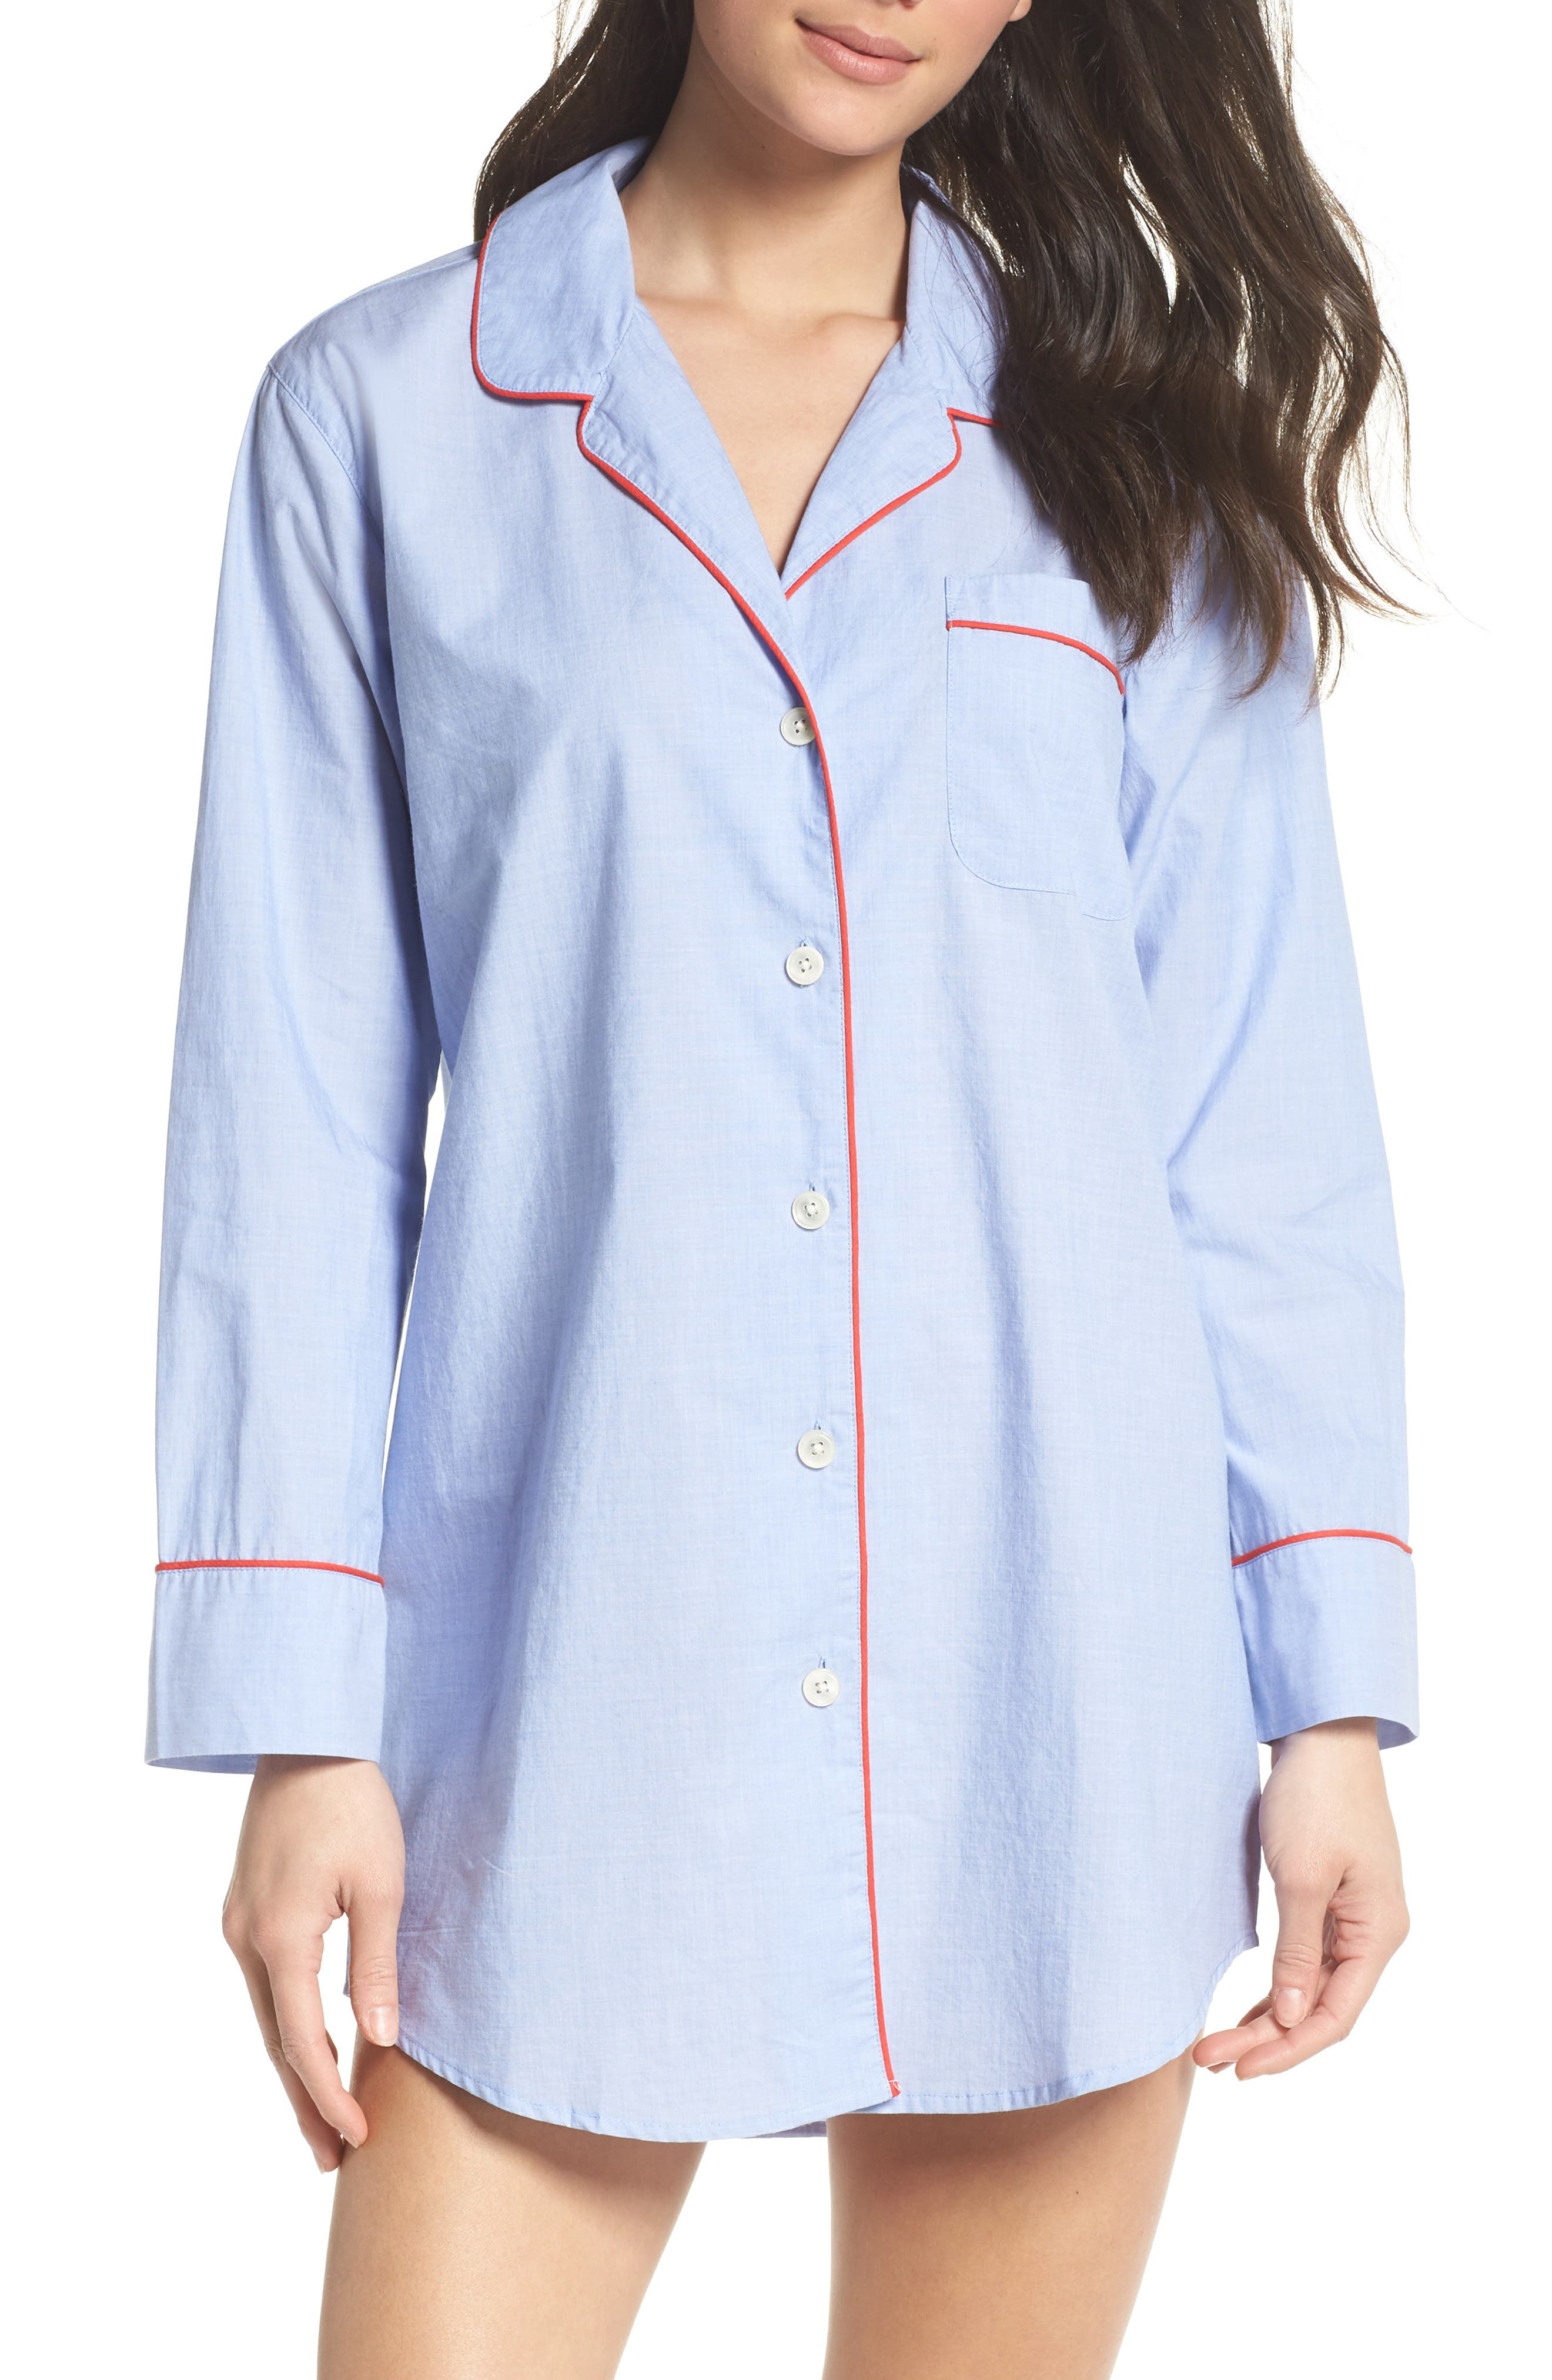 Alternate Image 1 Selected - J.Crew Woven Nightshirt